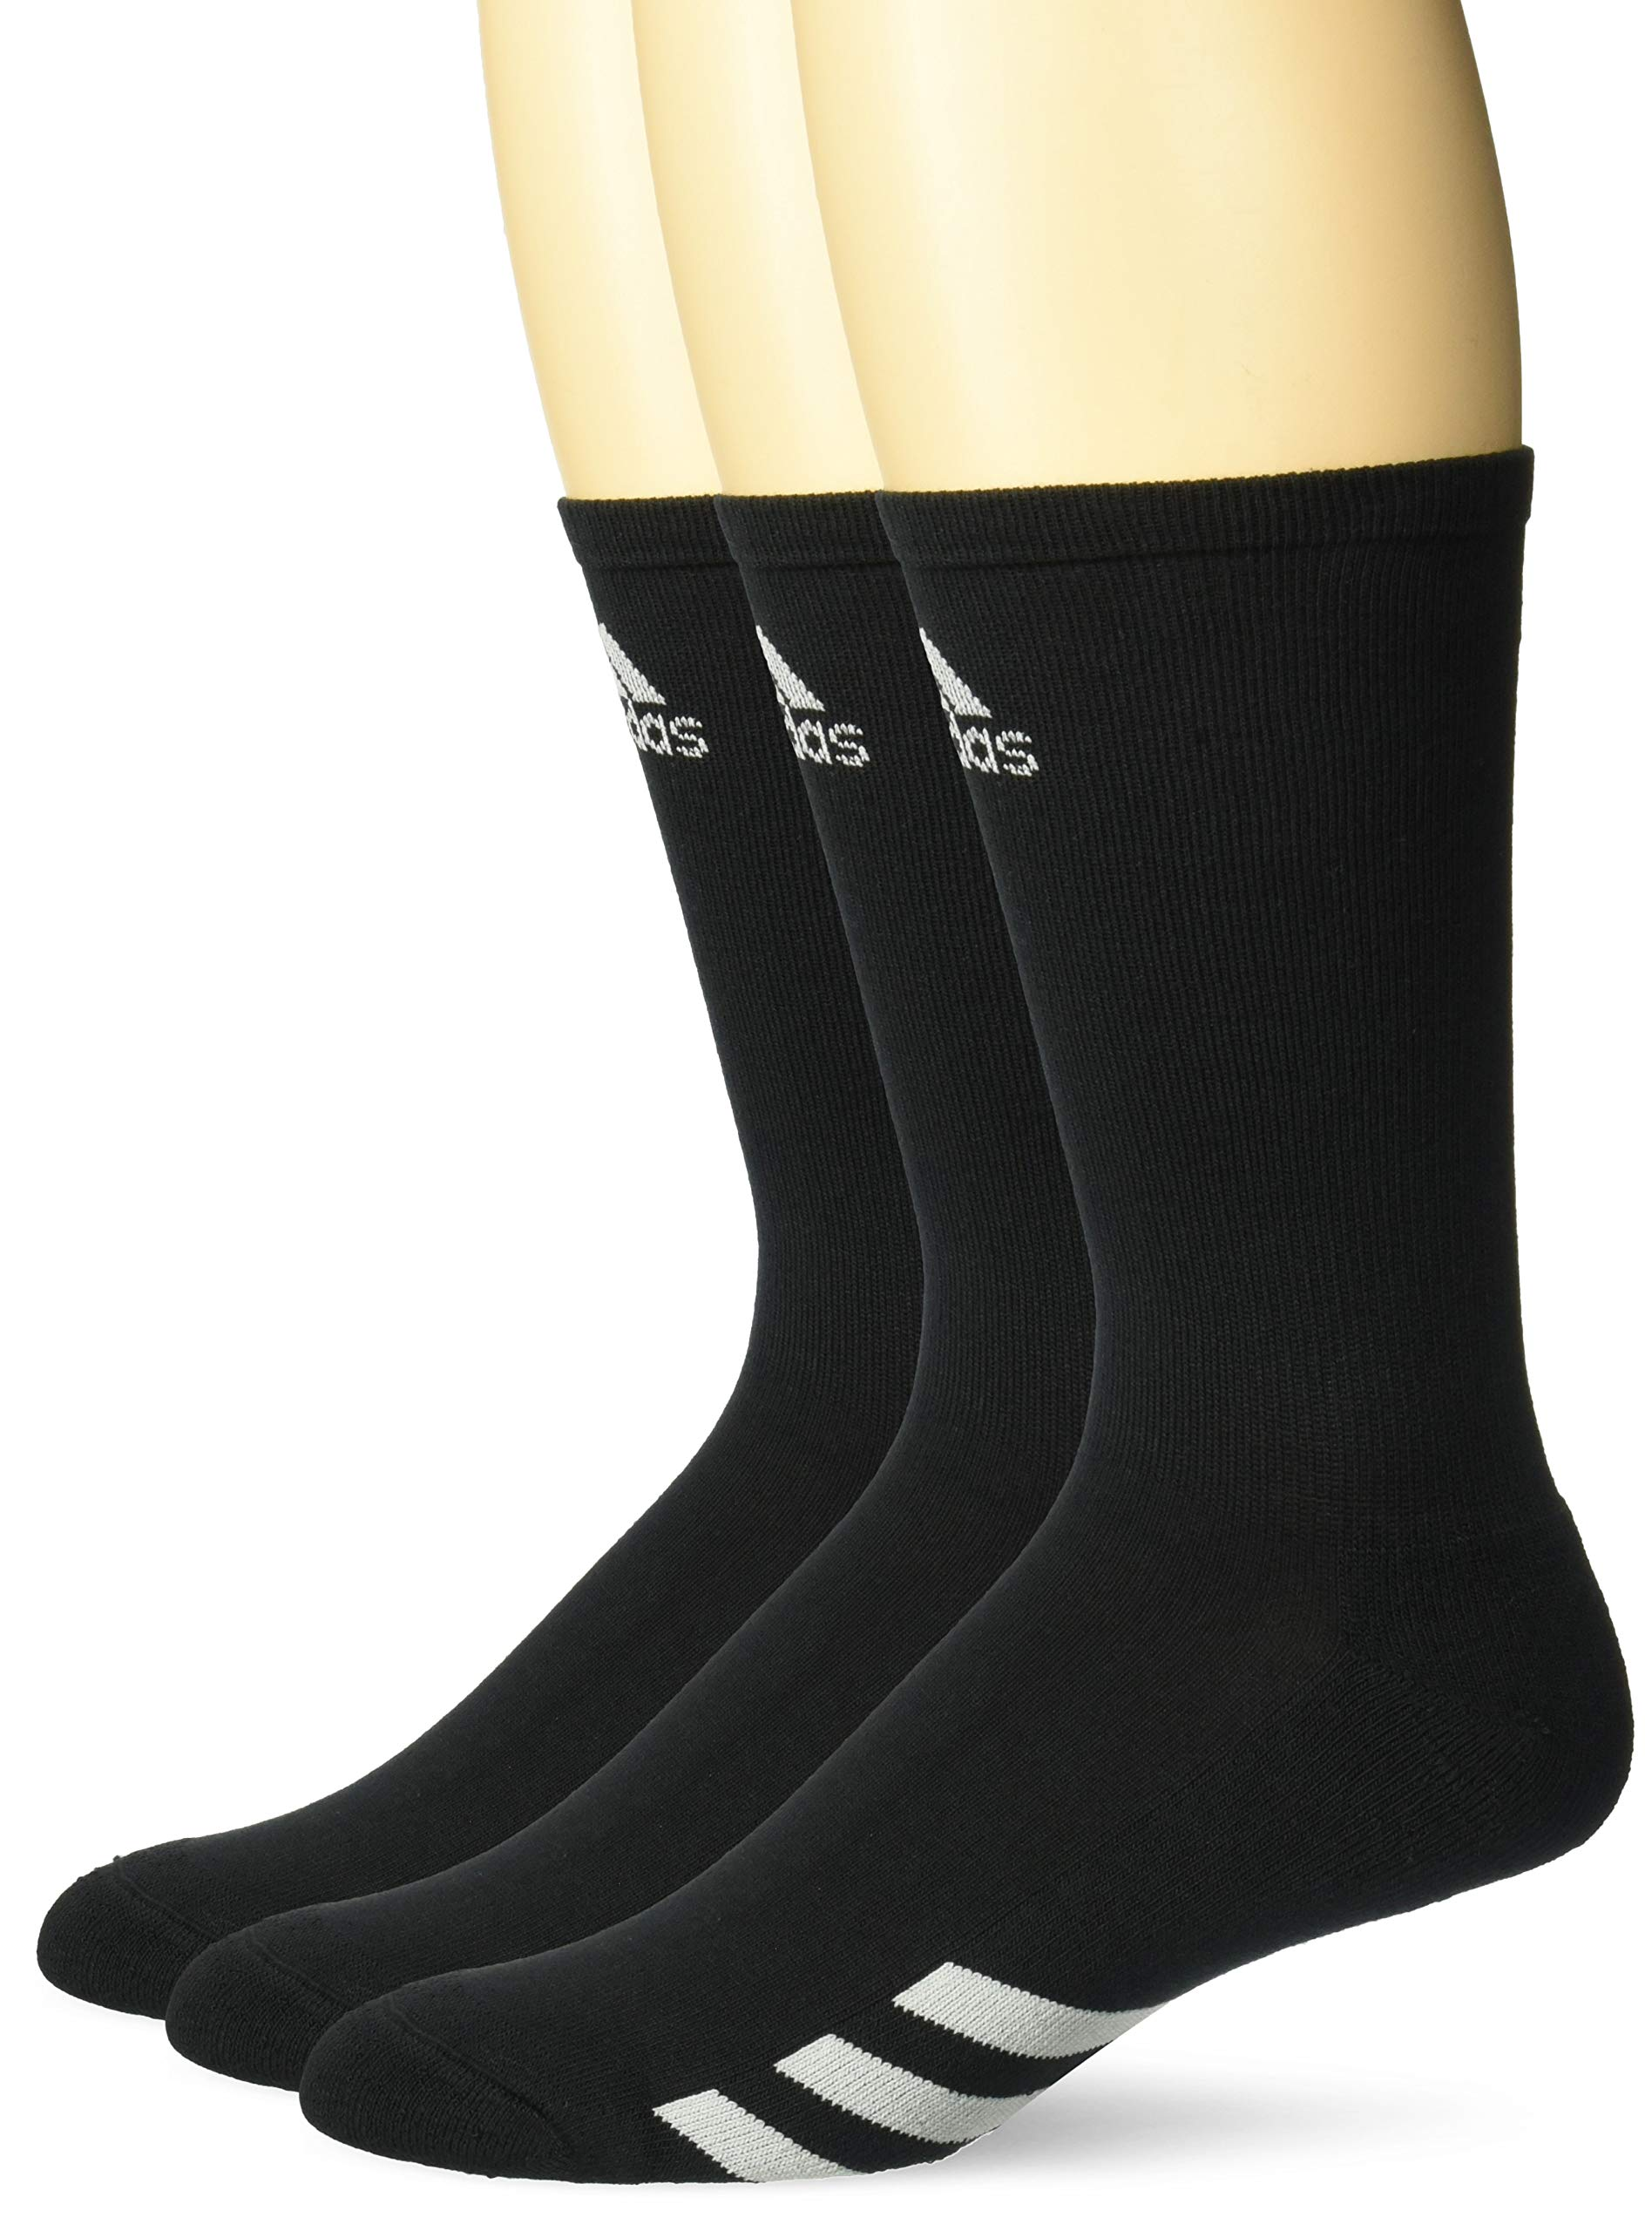 adidas Golf Men's 3-Pack Crew Sock, Black, 7-10 1/2 by adidas